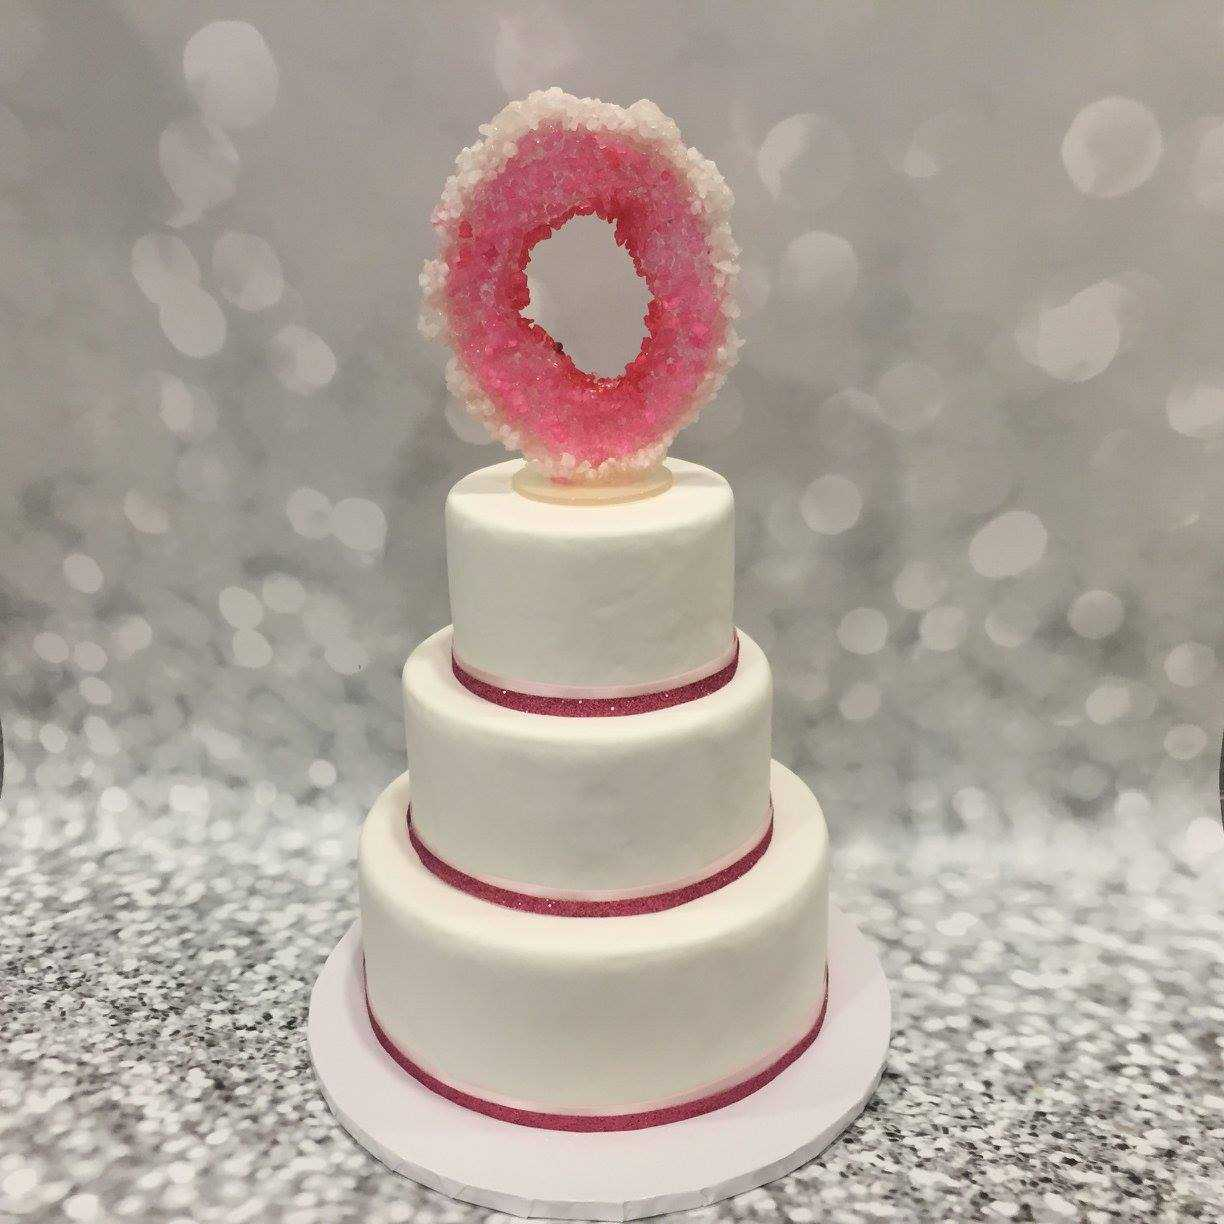 White with Pink rock geode cake